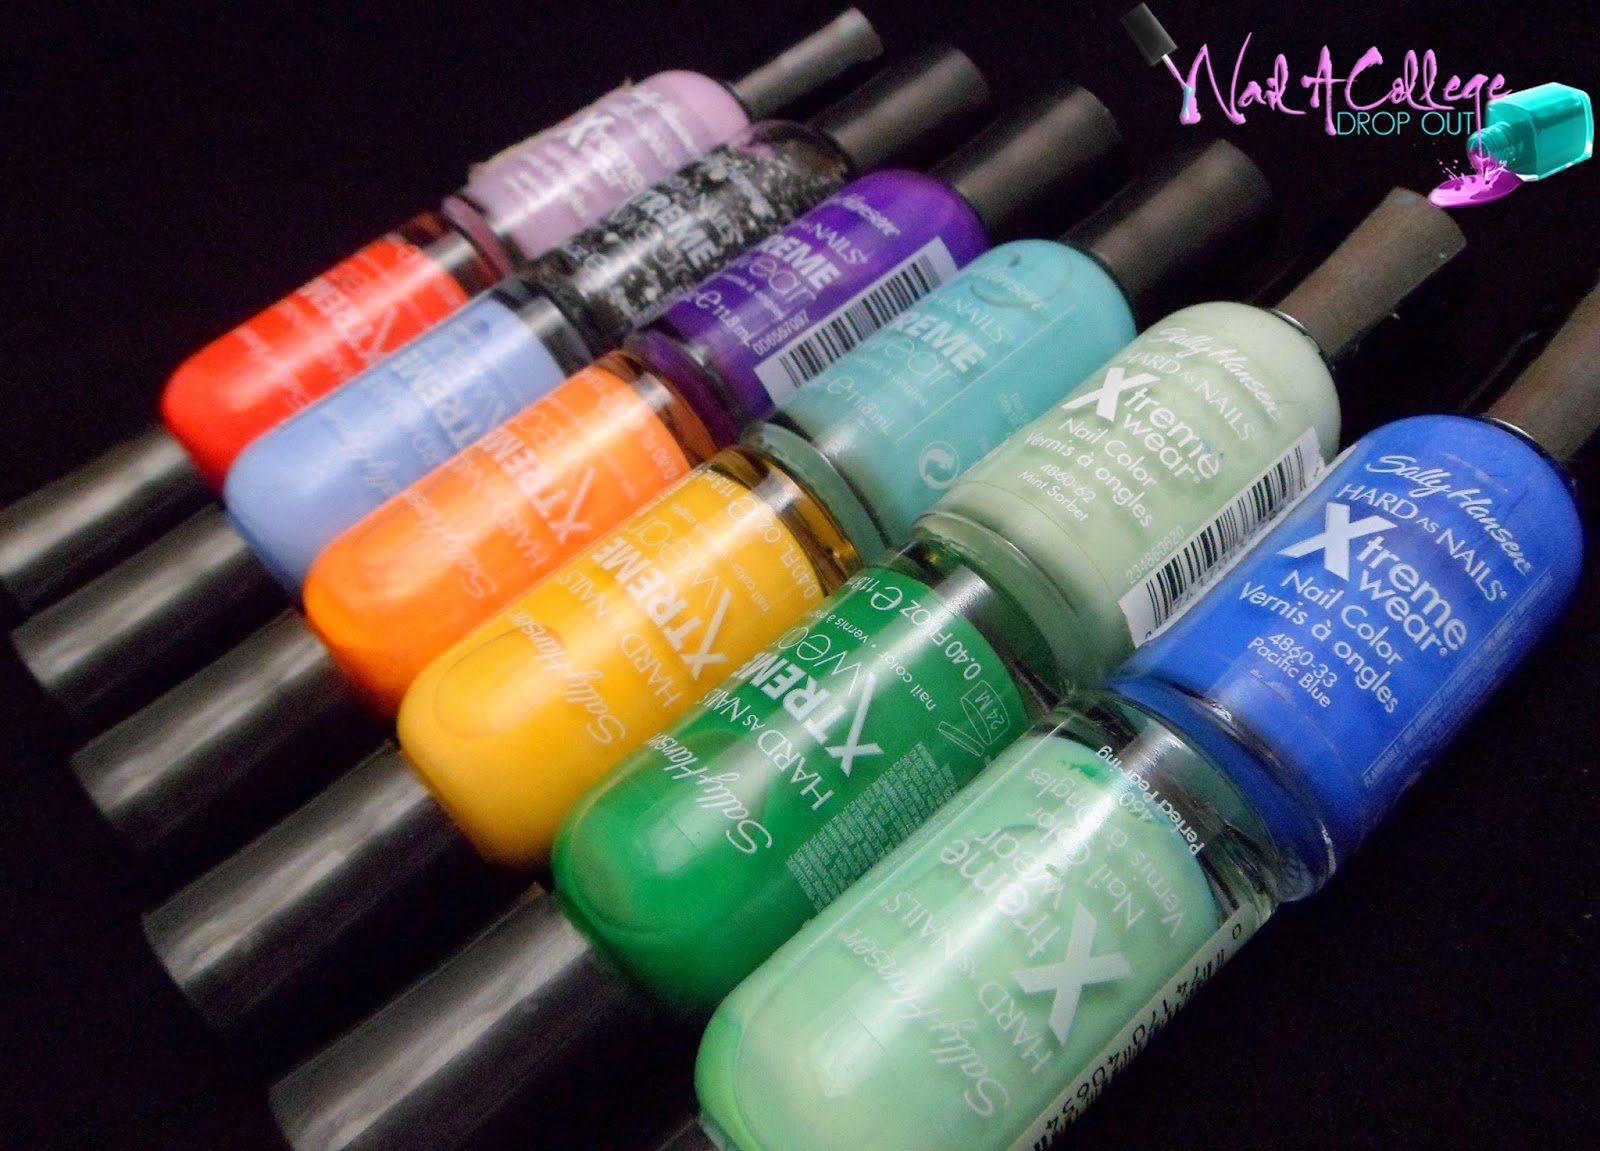 Nail A College Drop Out: My Favorite Nail Polish Brands